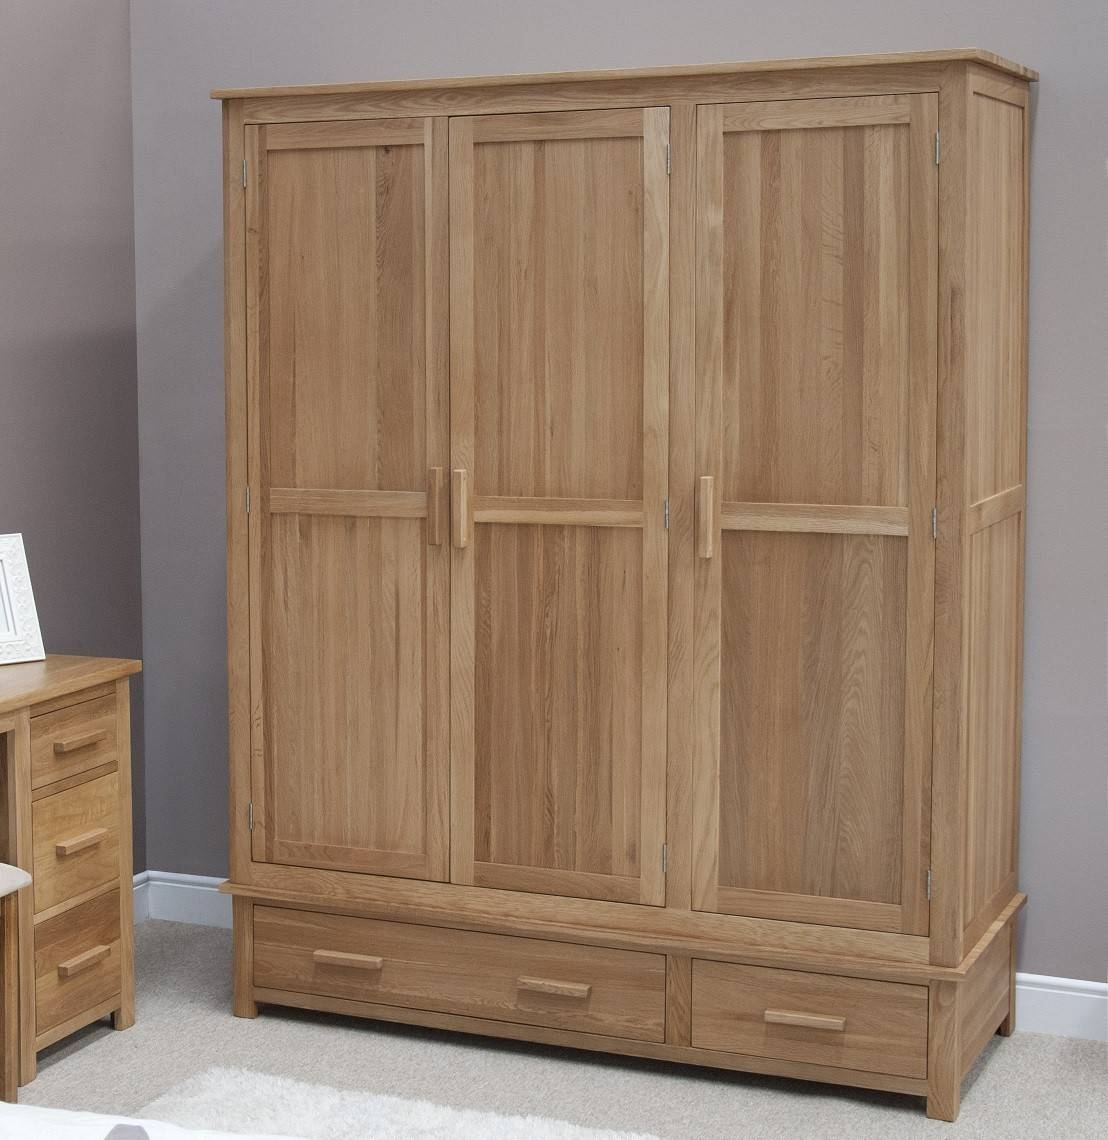 Opus Solid Oak 3 Door Triple Wardrobe | Oak Furniture Uk intended for Large Oak Wardrobes (Image 6 of 15)